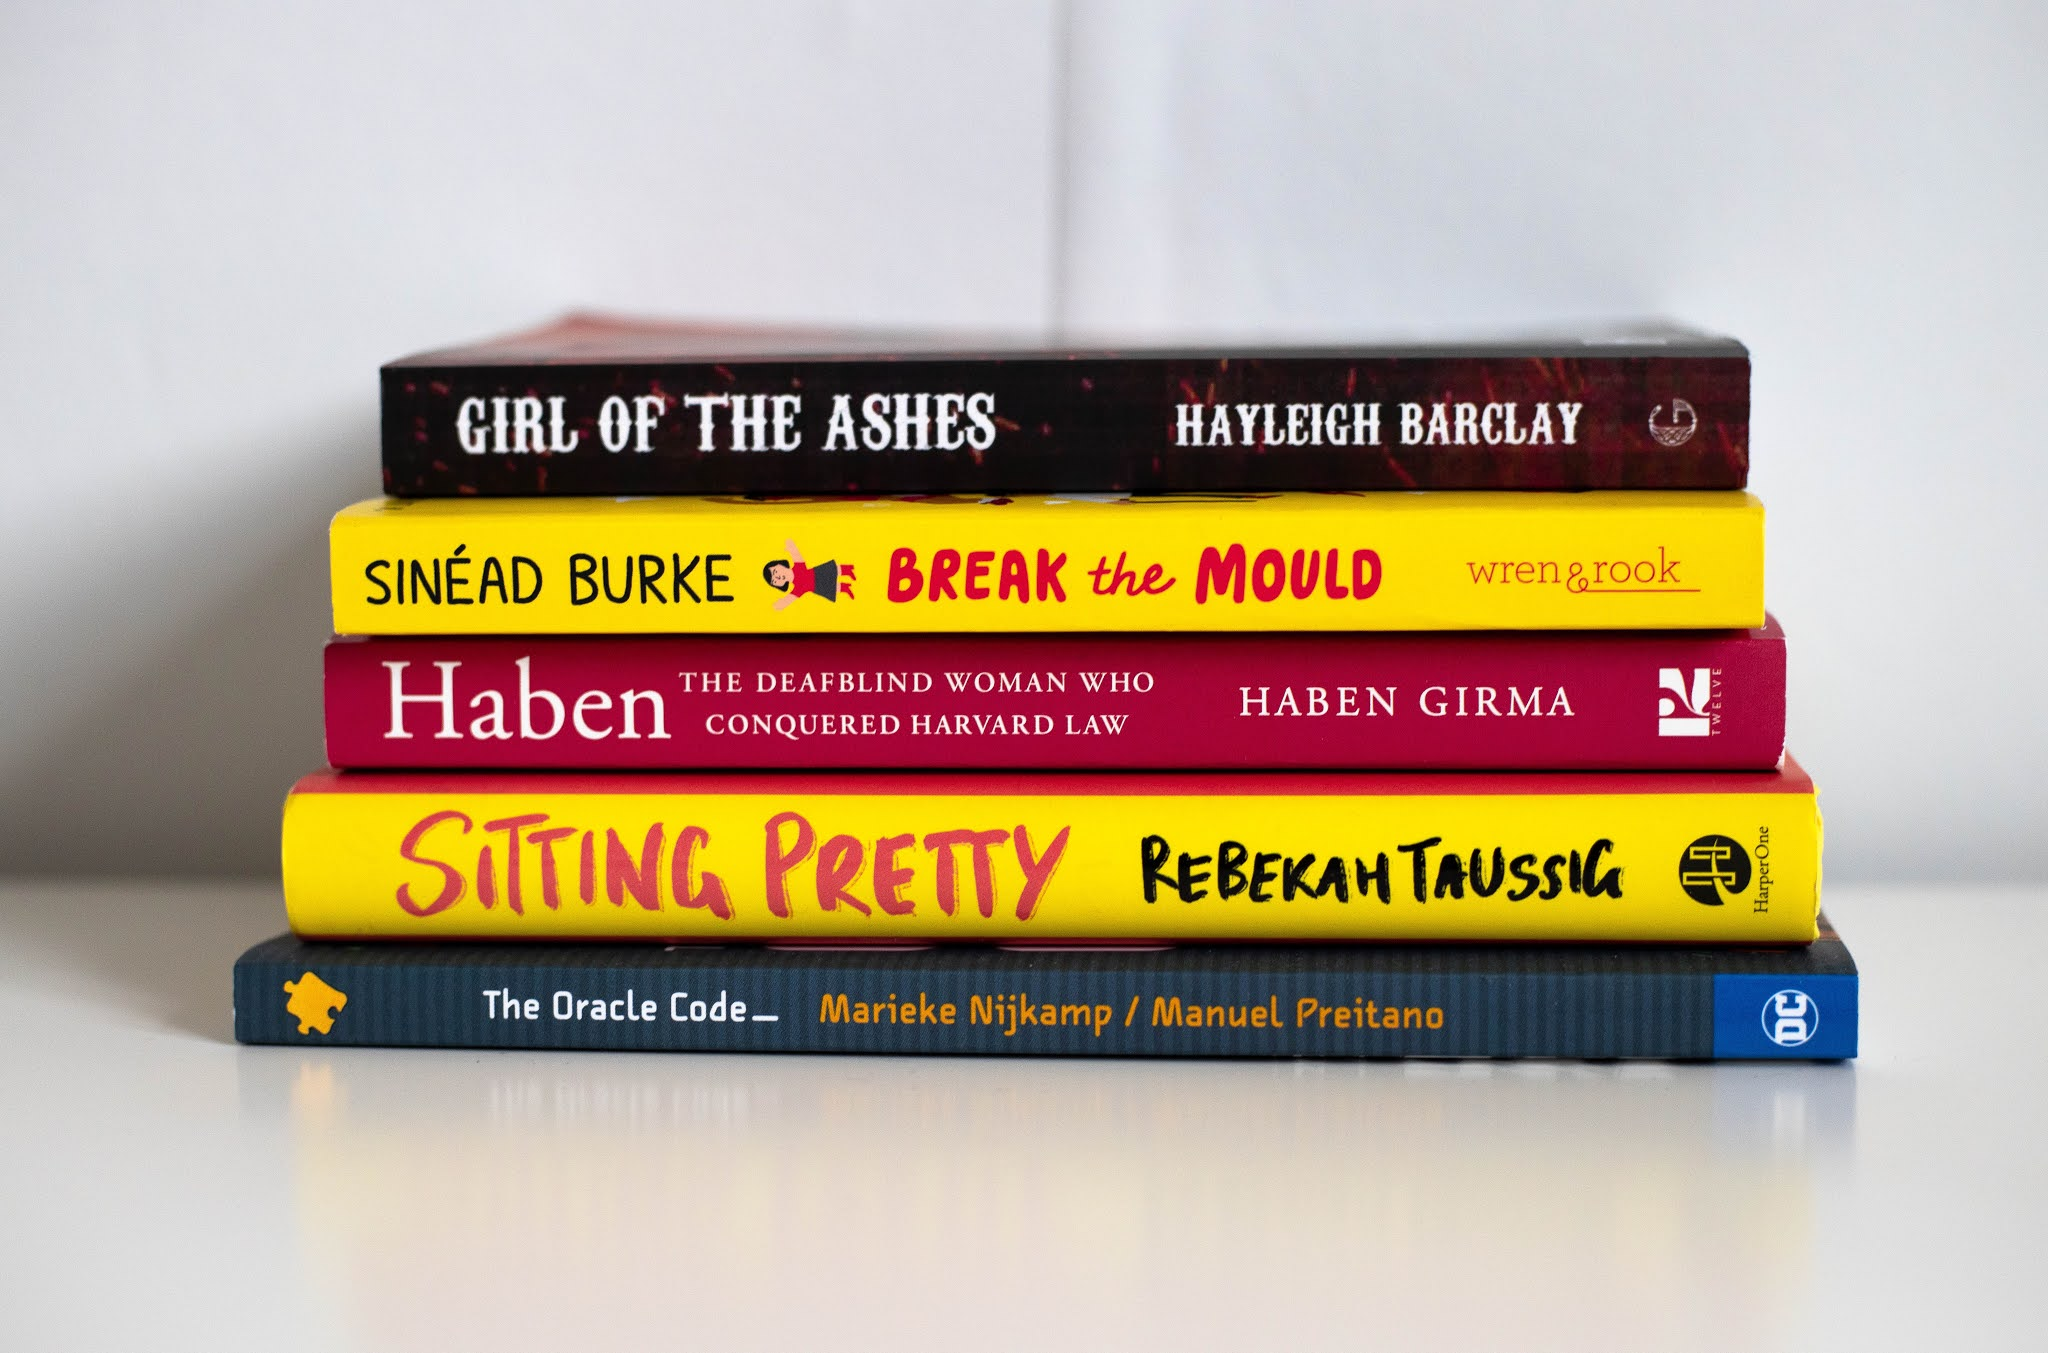 5 books are stacked on top of eachother against a white background. Top to bottom they are: Girl of the ashes by Hayleigh Barclay, Break the mould by Sinead Burke, Haben the deafblind woman who conquered Harvard law, Sitting pretty by Rebekah Taussig and The Oracle code by Marieke Nijkamp and illustrated by Manuel Preitano.